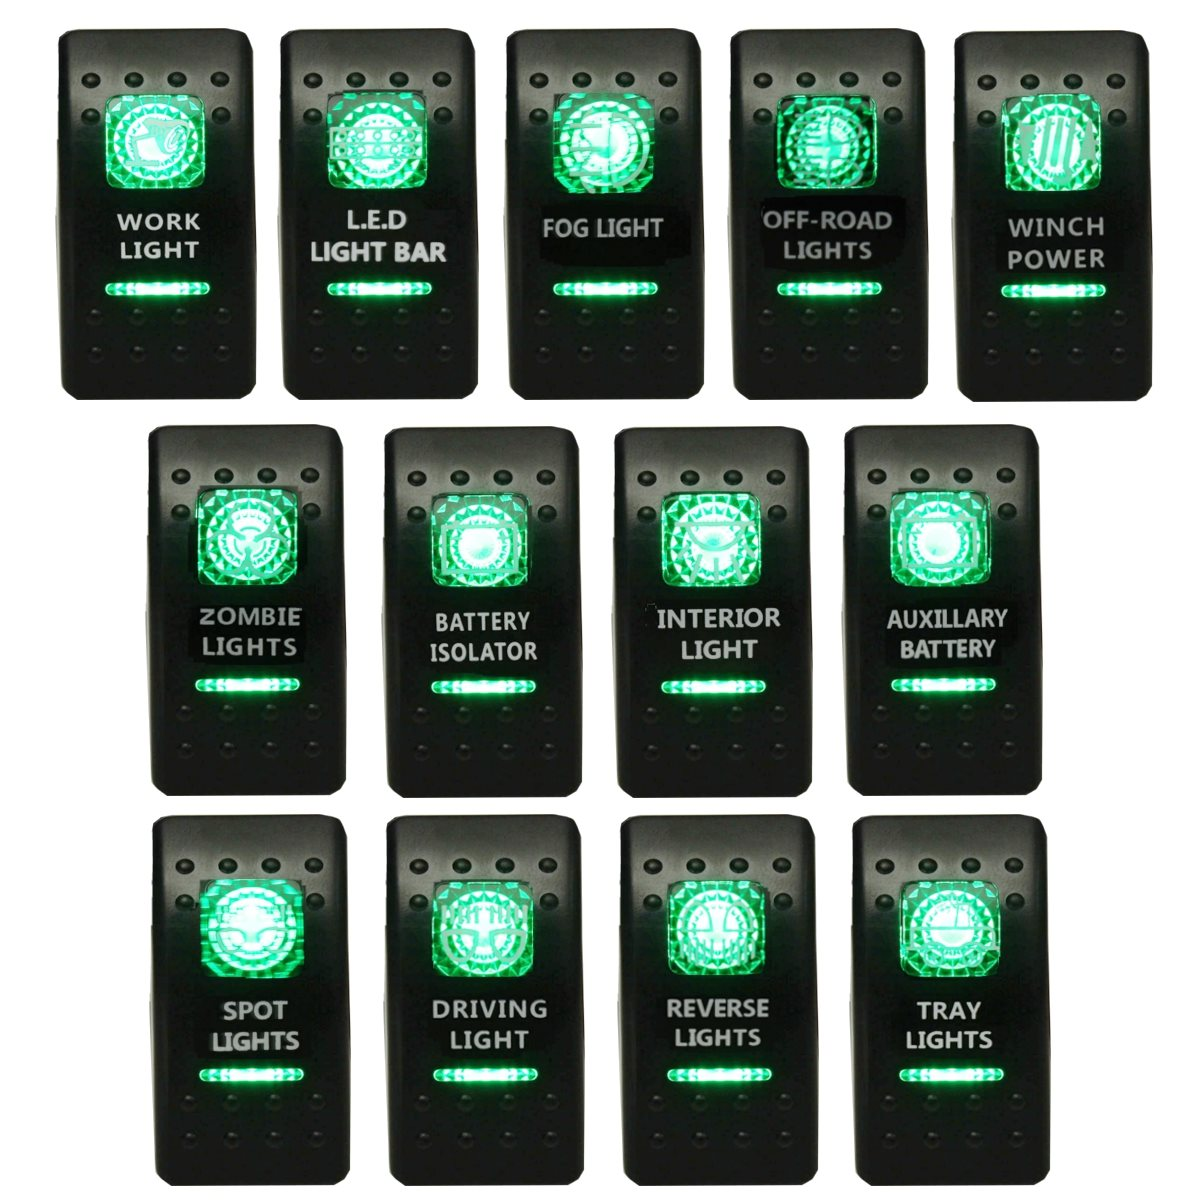 illuminated marine rocker switches 2007 kenworth radio wiring diagram toggle switch carling narva arb style dual led on off gree in car relays from automobiles motorcycles aliexpress com